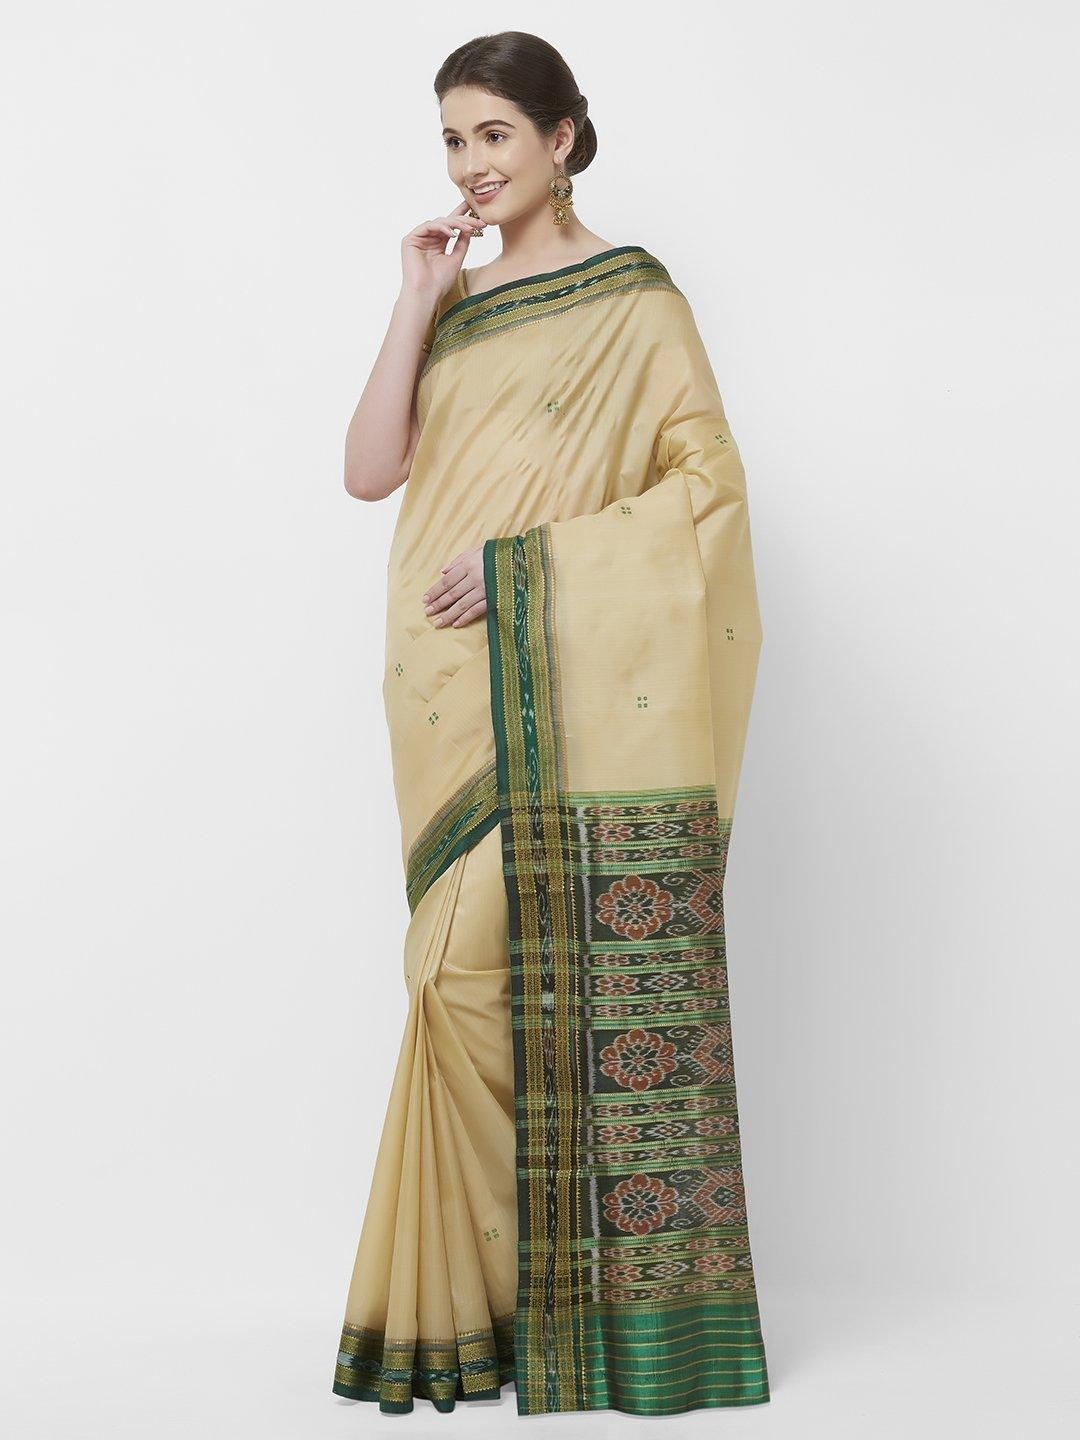 CraftsCollection.in -Beige and Green Odisha Sambalpuri Silk Saree